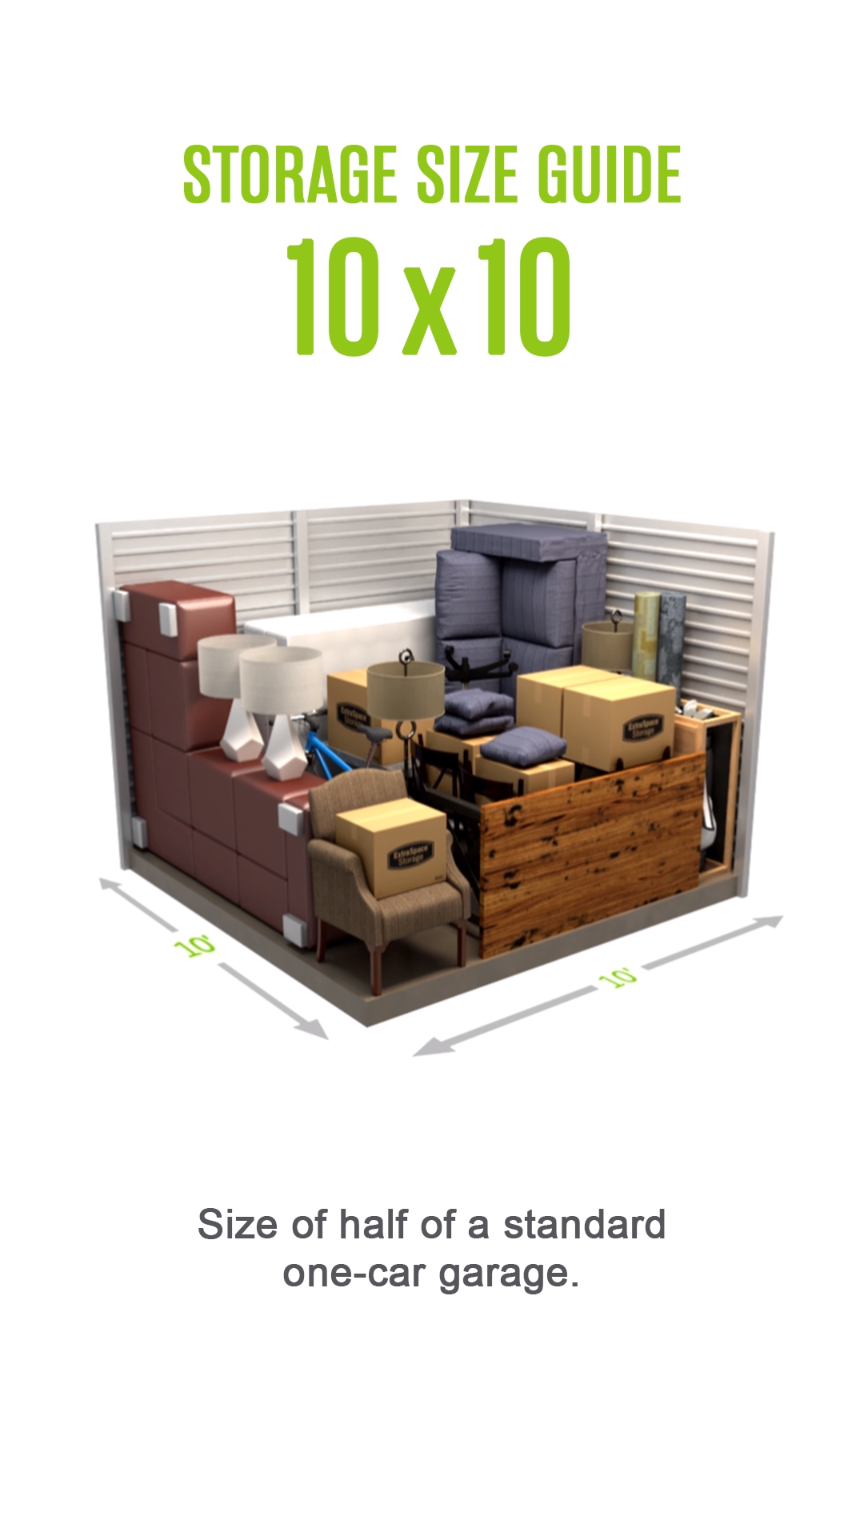 Storage Unit Size Guide Extra Space Storage Video Video Storage Unit Design Self Storage Units Storage Unit